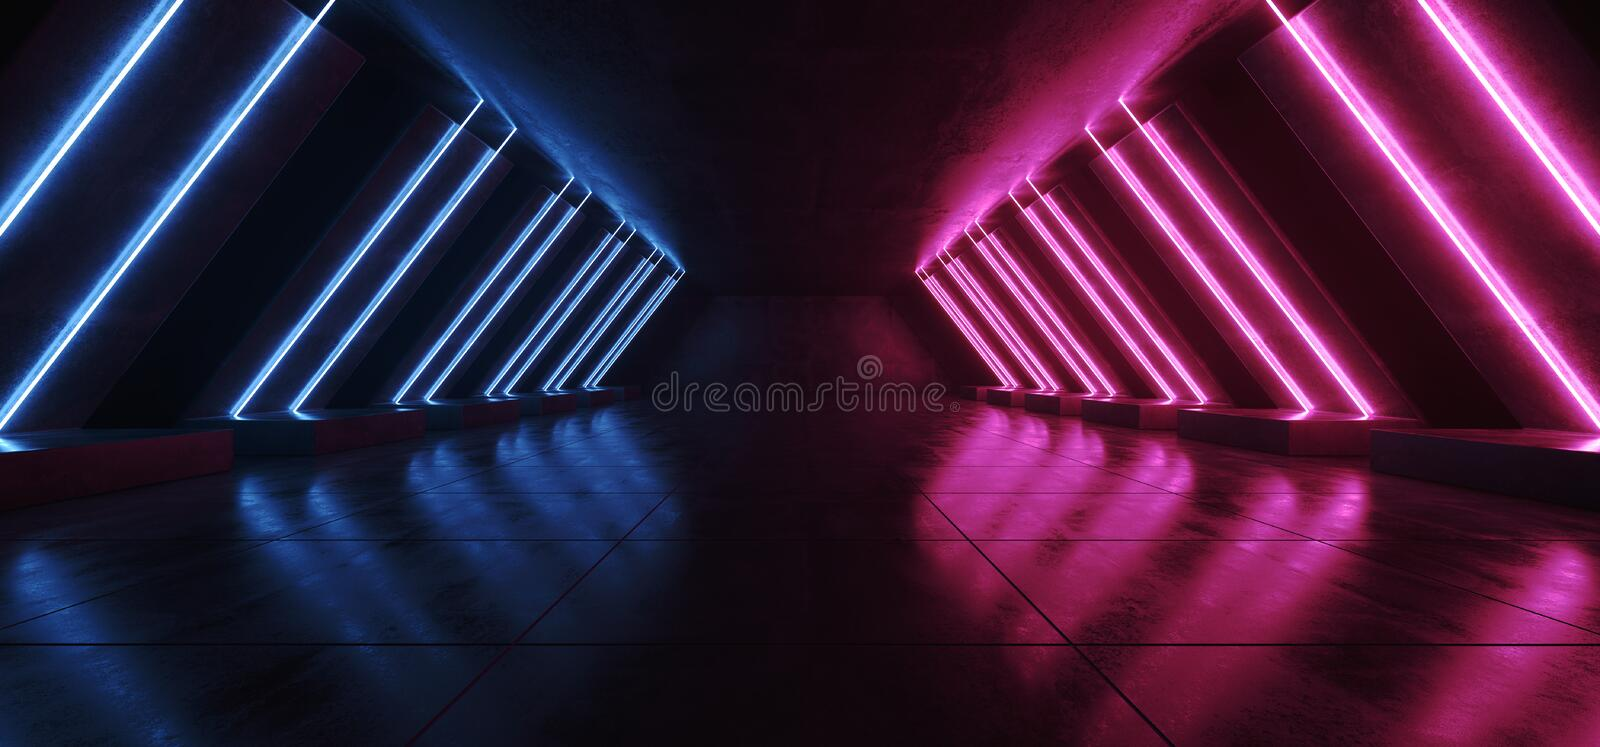 Fluorescent  Sci Fi Neon Glowing Vibrant Blue Laser Tube Shaped Lights Elegant Modern In Reflective Concrete Grunge Tiled Corridor. Tunnel Entrance 3D Rendering stock illustration